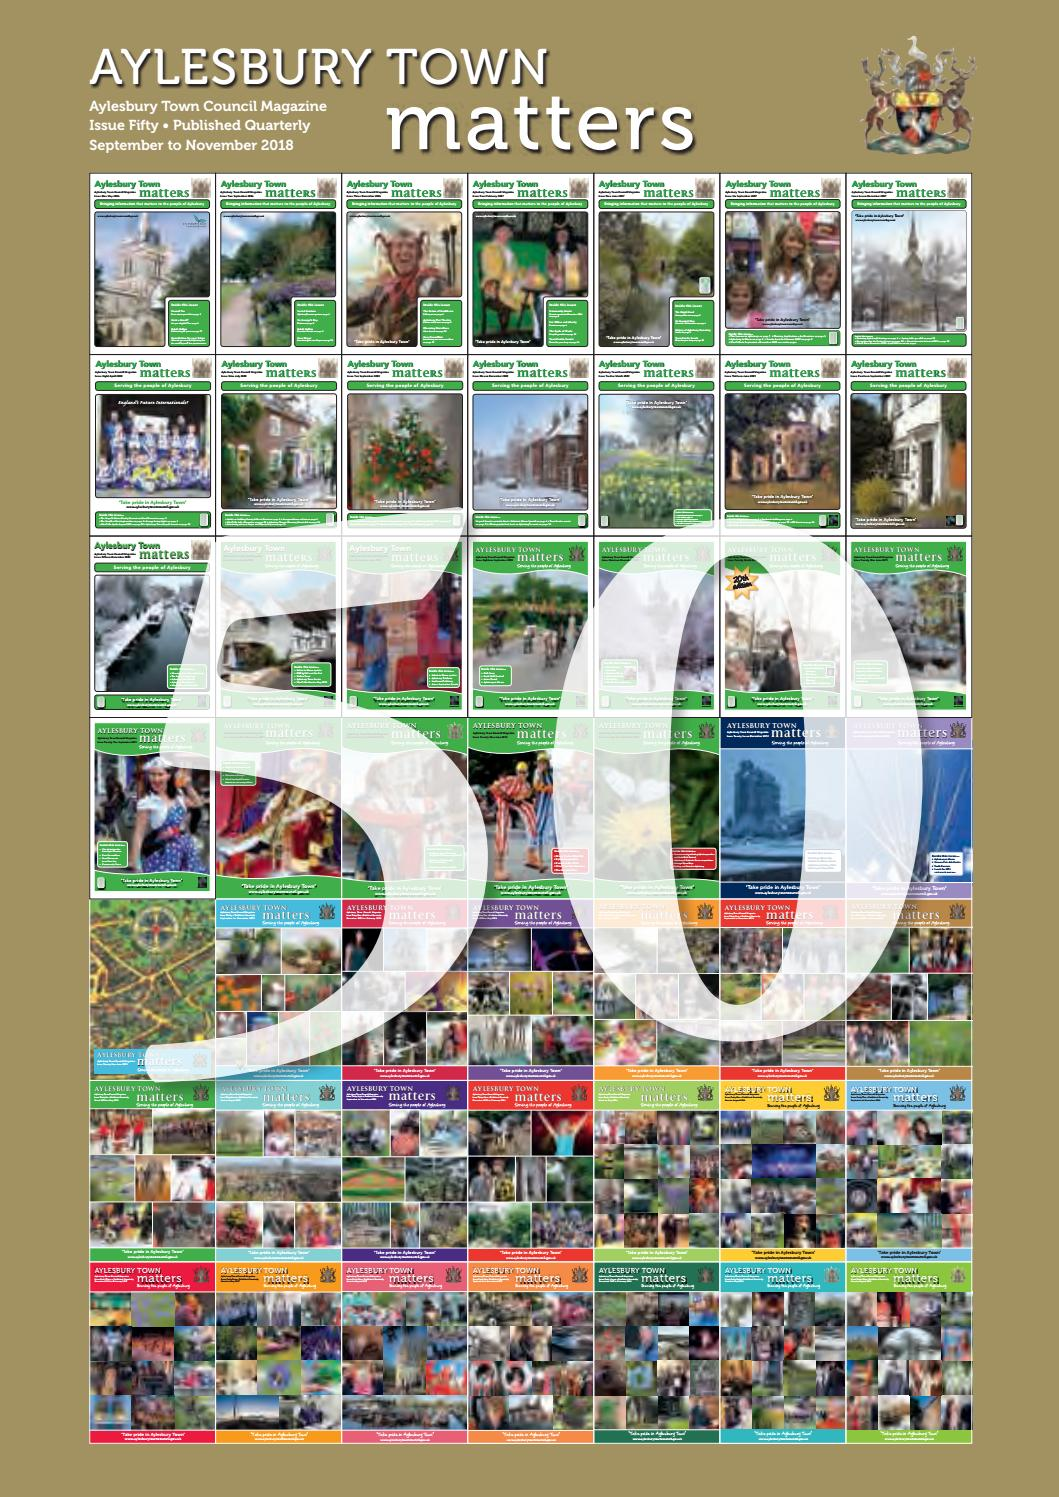 Aylesbury Town Matters: Issue 50 by Aylesbury Town Council - issuu